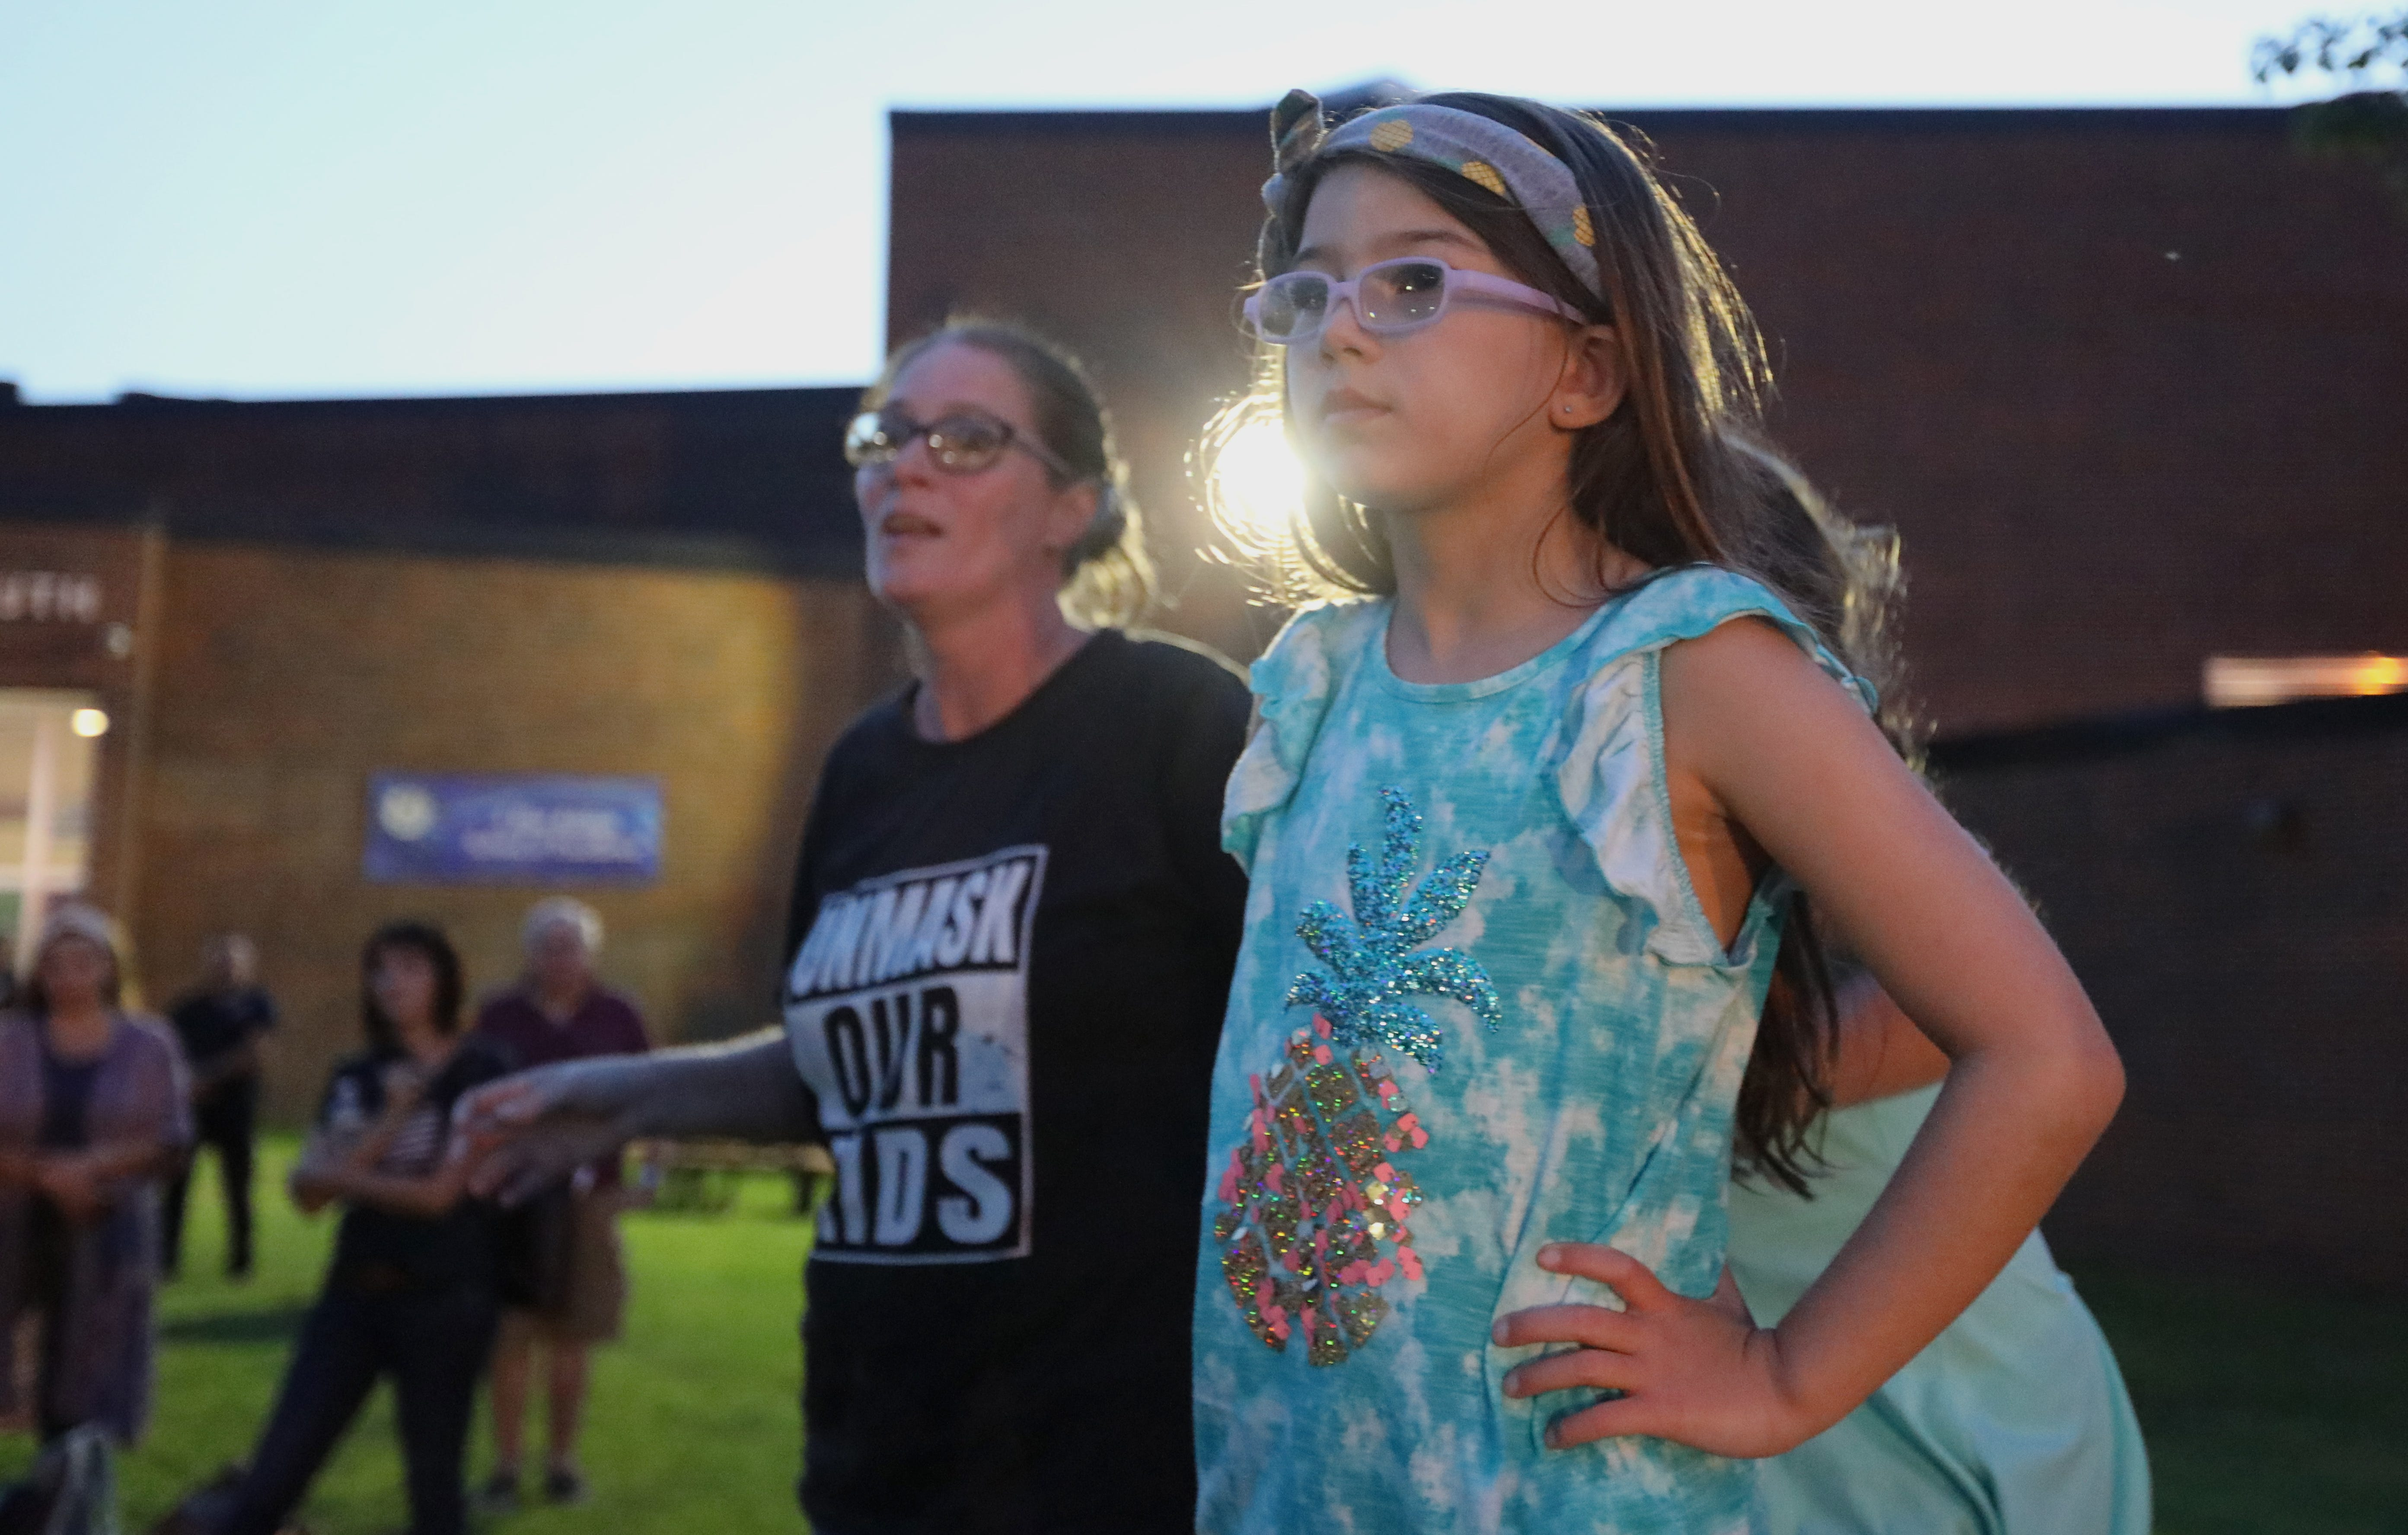 Karalyn Maggino, with her daughter, Madison, 8, speaks outside of Clarkstown South in West Nyack after a Clarkstown School Board meeting was adjourned early when many attendees refused to wear masks Aug. 12, 2021.